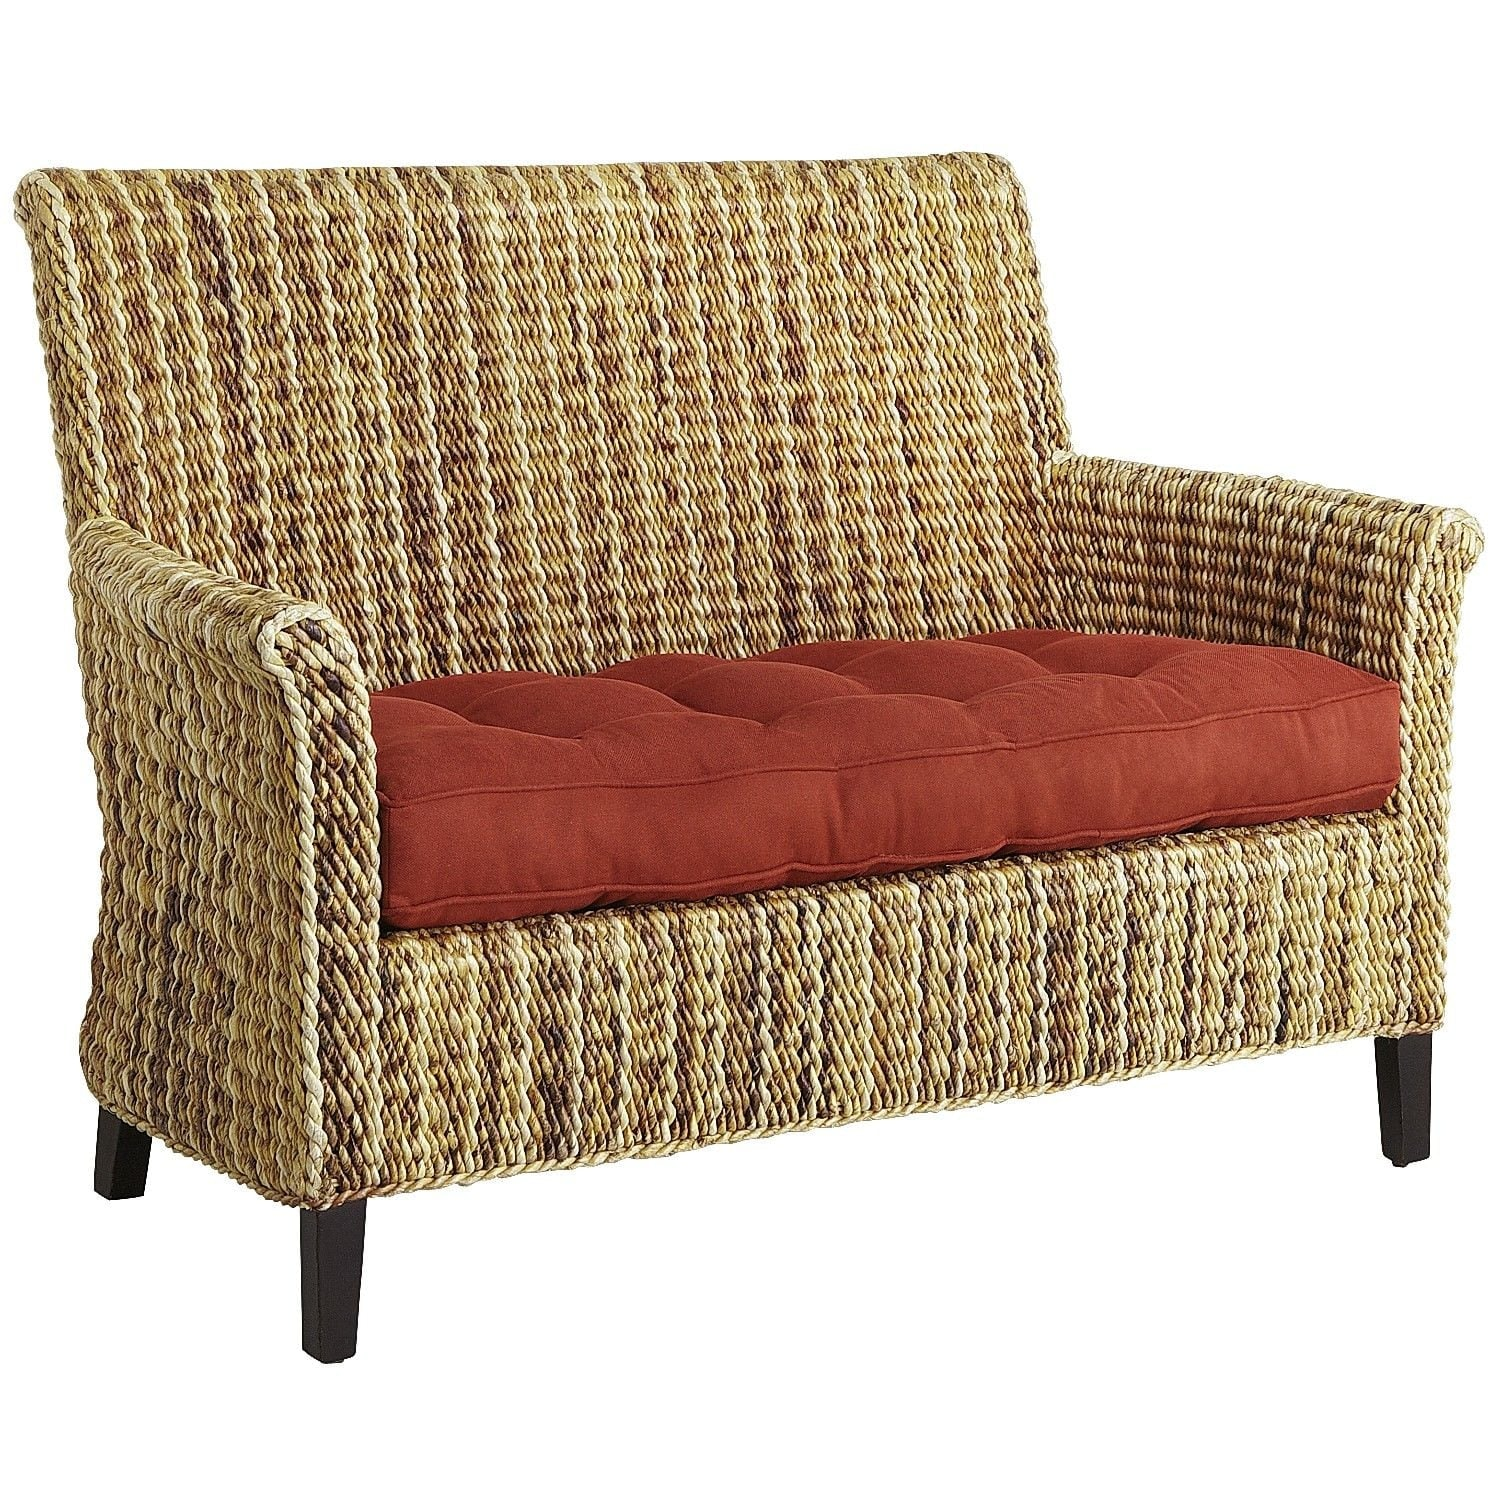 Pier One Wicker Furniture | Peir One Furniture | Patio Furniture Pier One